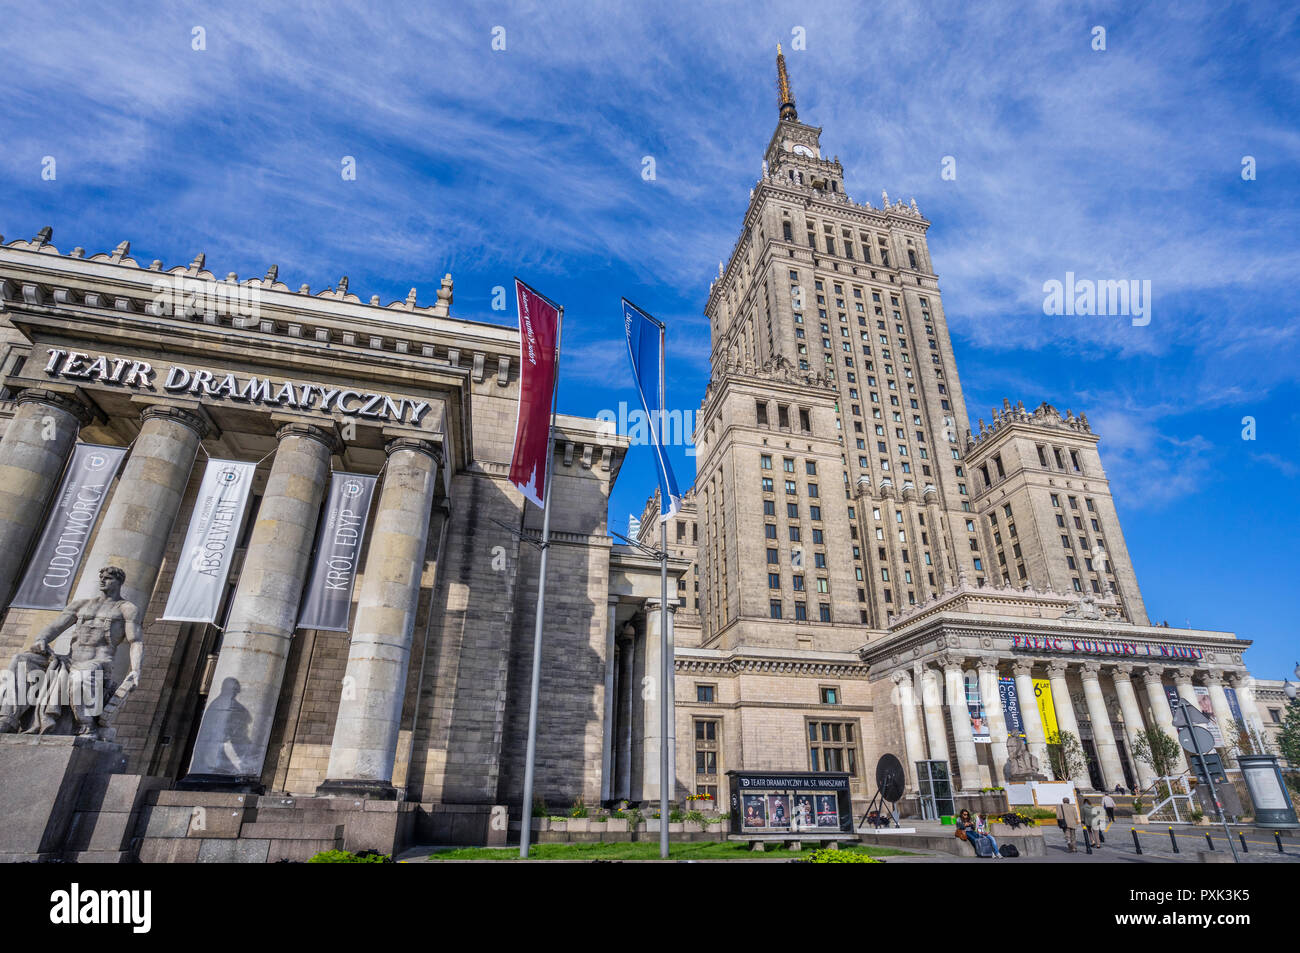 portico of the Drama Theatre at the soc-realist Russian Wedding Cake style Palace of Culture and Science, Warsaw, Poland Stock Photo